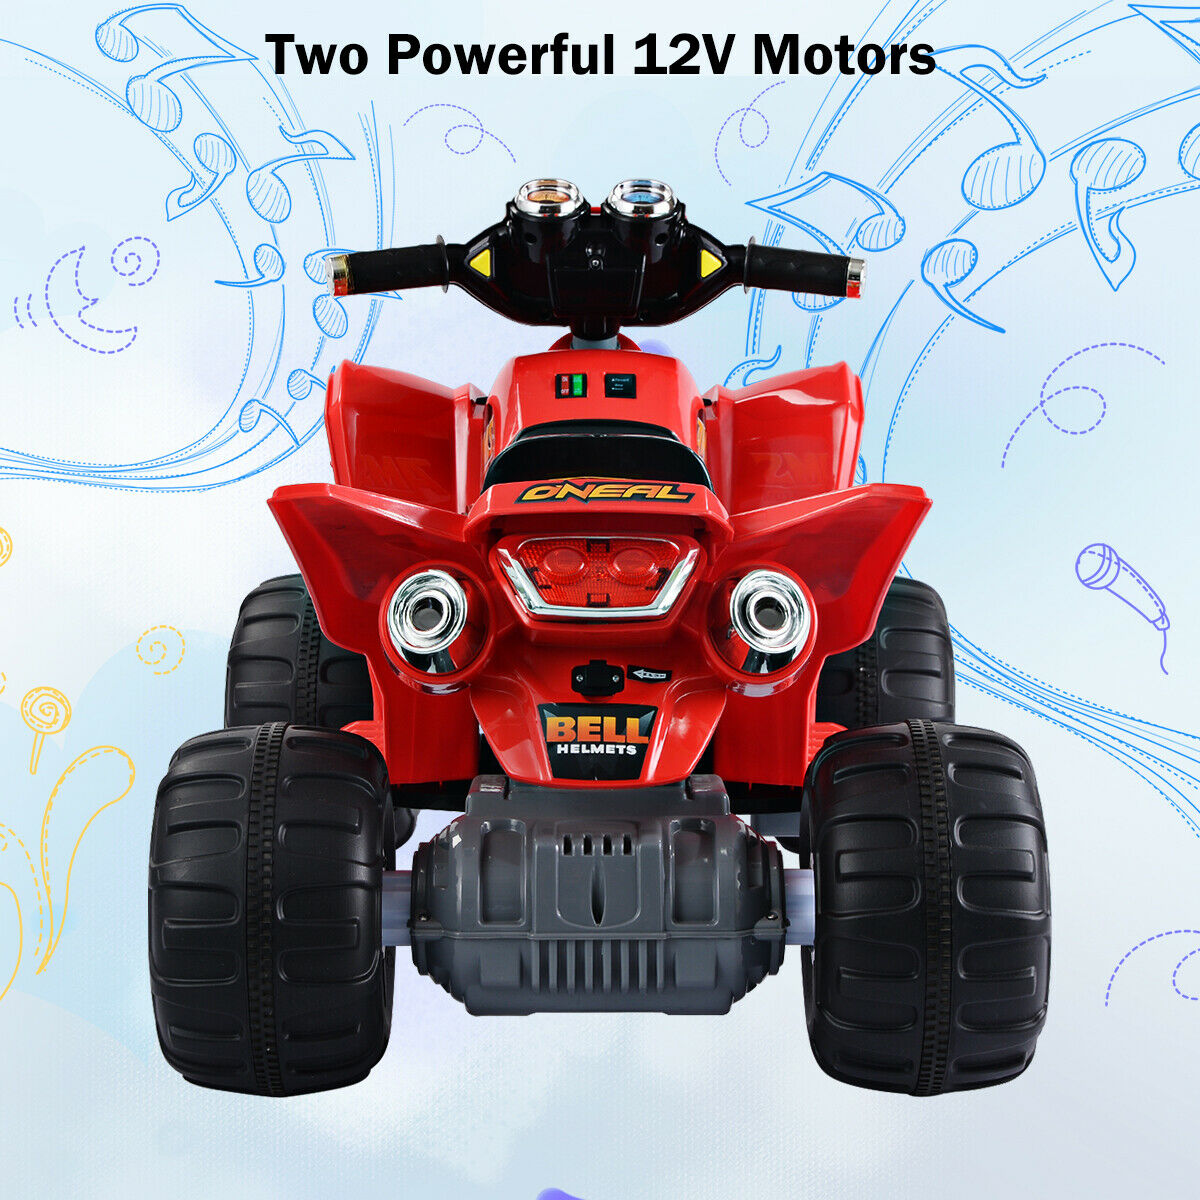 12v Led Quad Kids Ride On Atv Quad 4 Wheeler Electric Toy Car 12v Battery Power Led Red